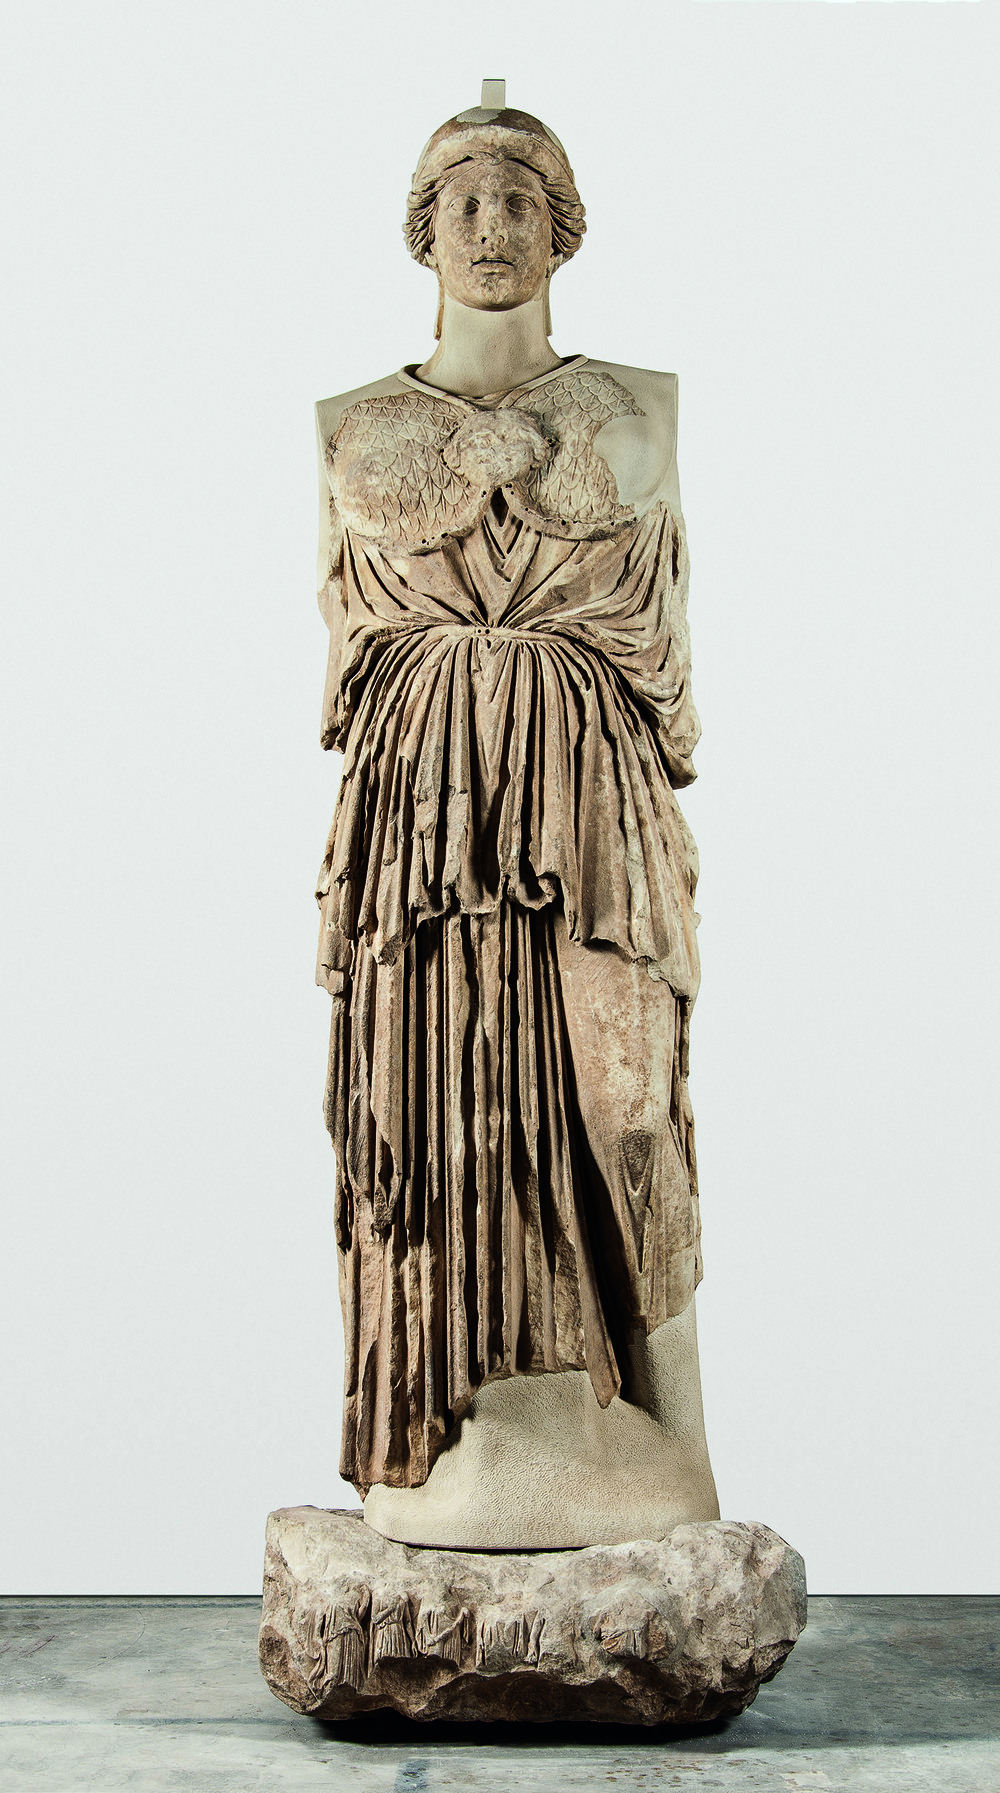 """Statue of Athena Parthenos,"" Greek, Hellenistic, circa 170 B.C.; marble copy of a mid-5th century B.C. chryselephantine cult statue of Athena Parthenos by Pheidias. Antikensammlung, Staatliche Museen zu Berlin (AvP VII 24). Images © SMB / Antikensammlung."